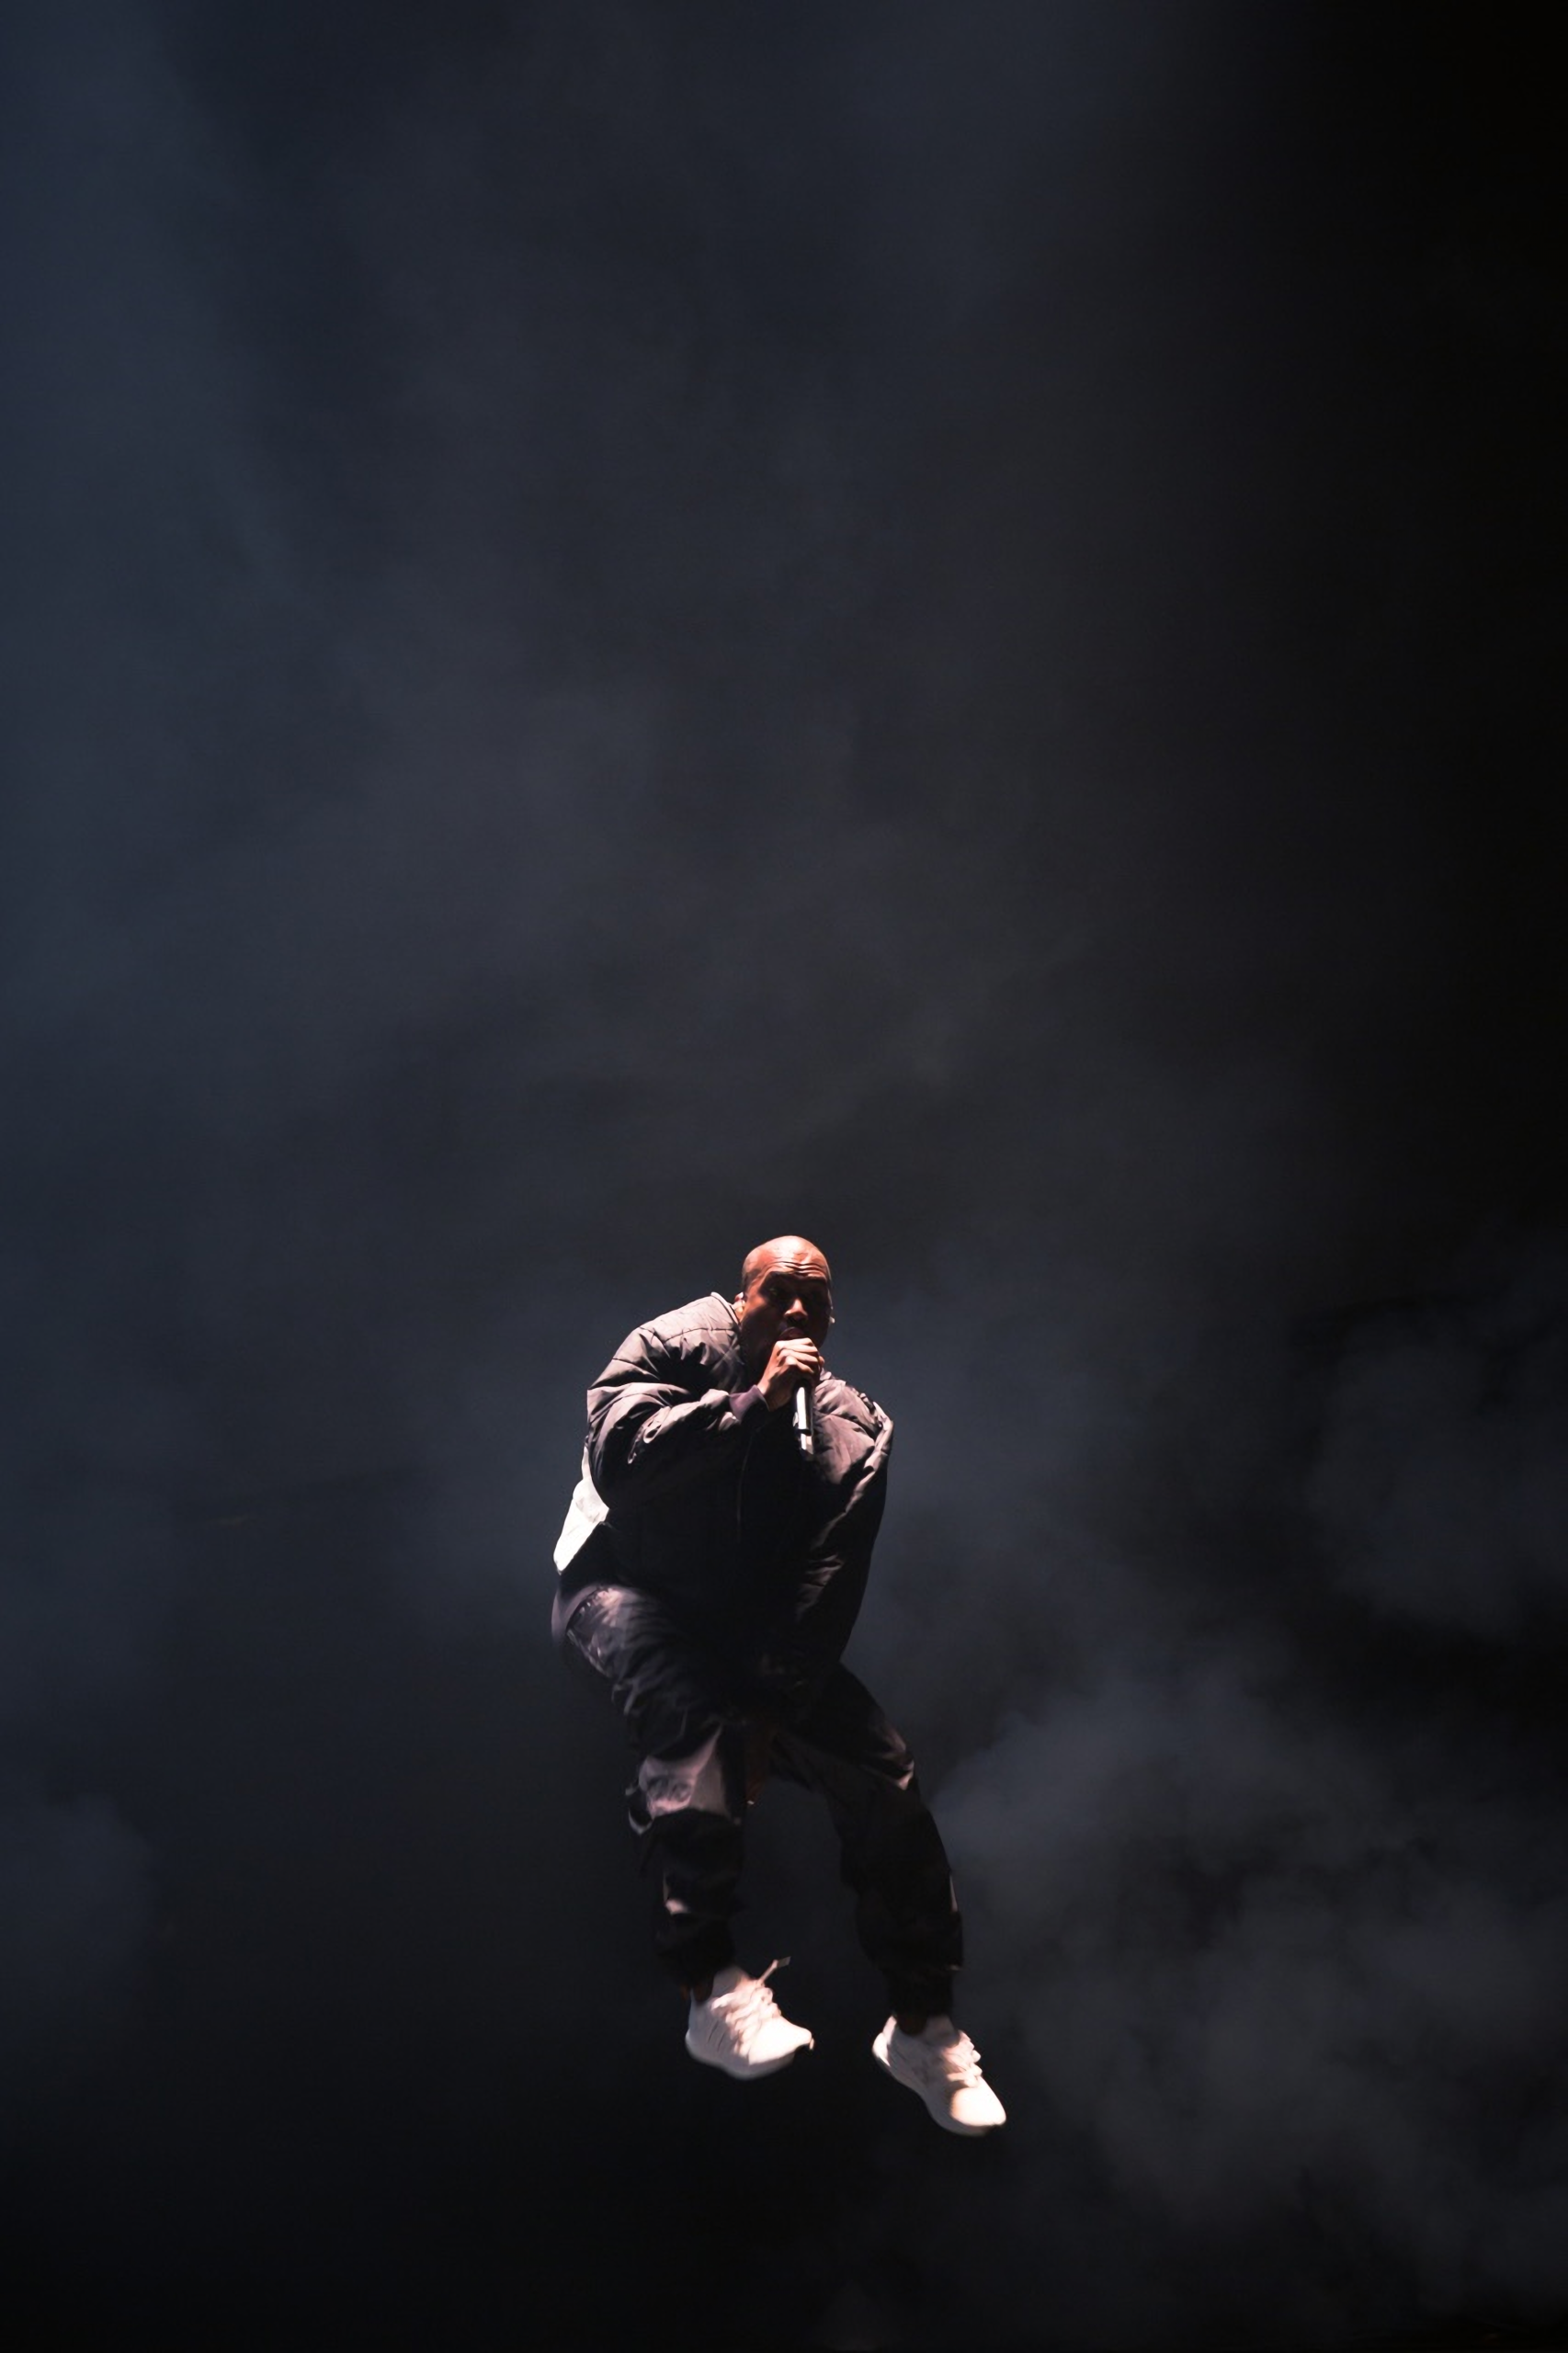 Kanye West Wallpaper Picture Click Wallpapers Kanye West Wallpaper Yeezus Wallpaper Kanye West